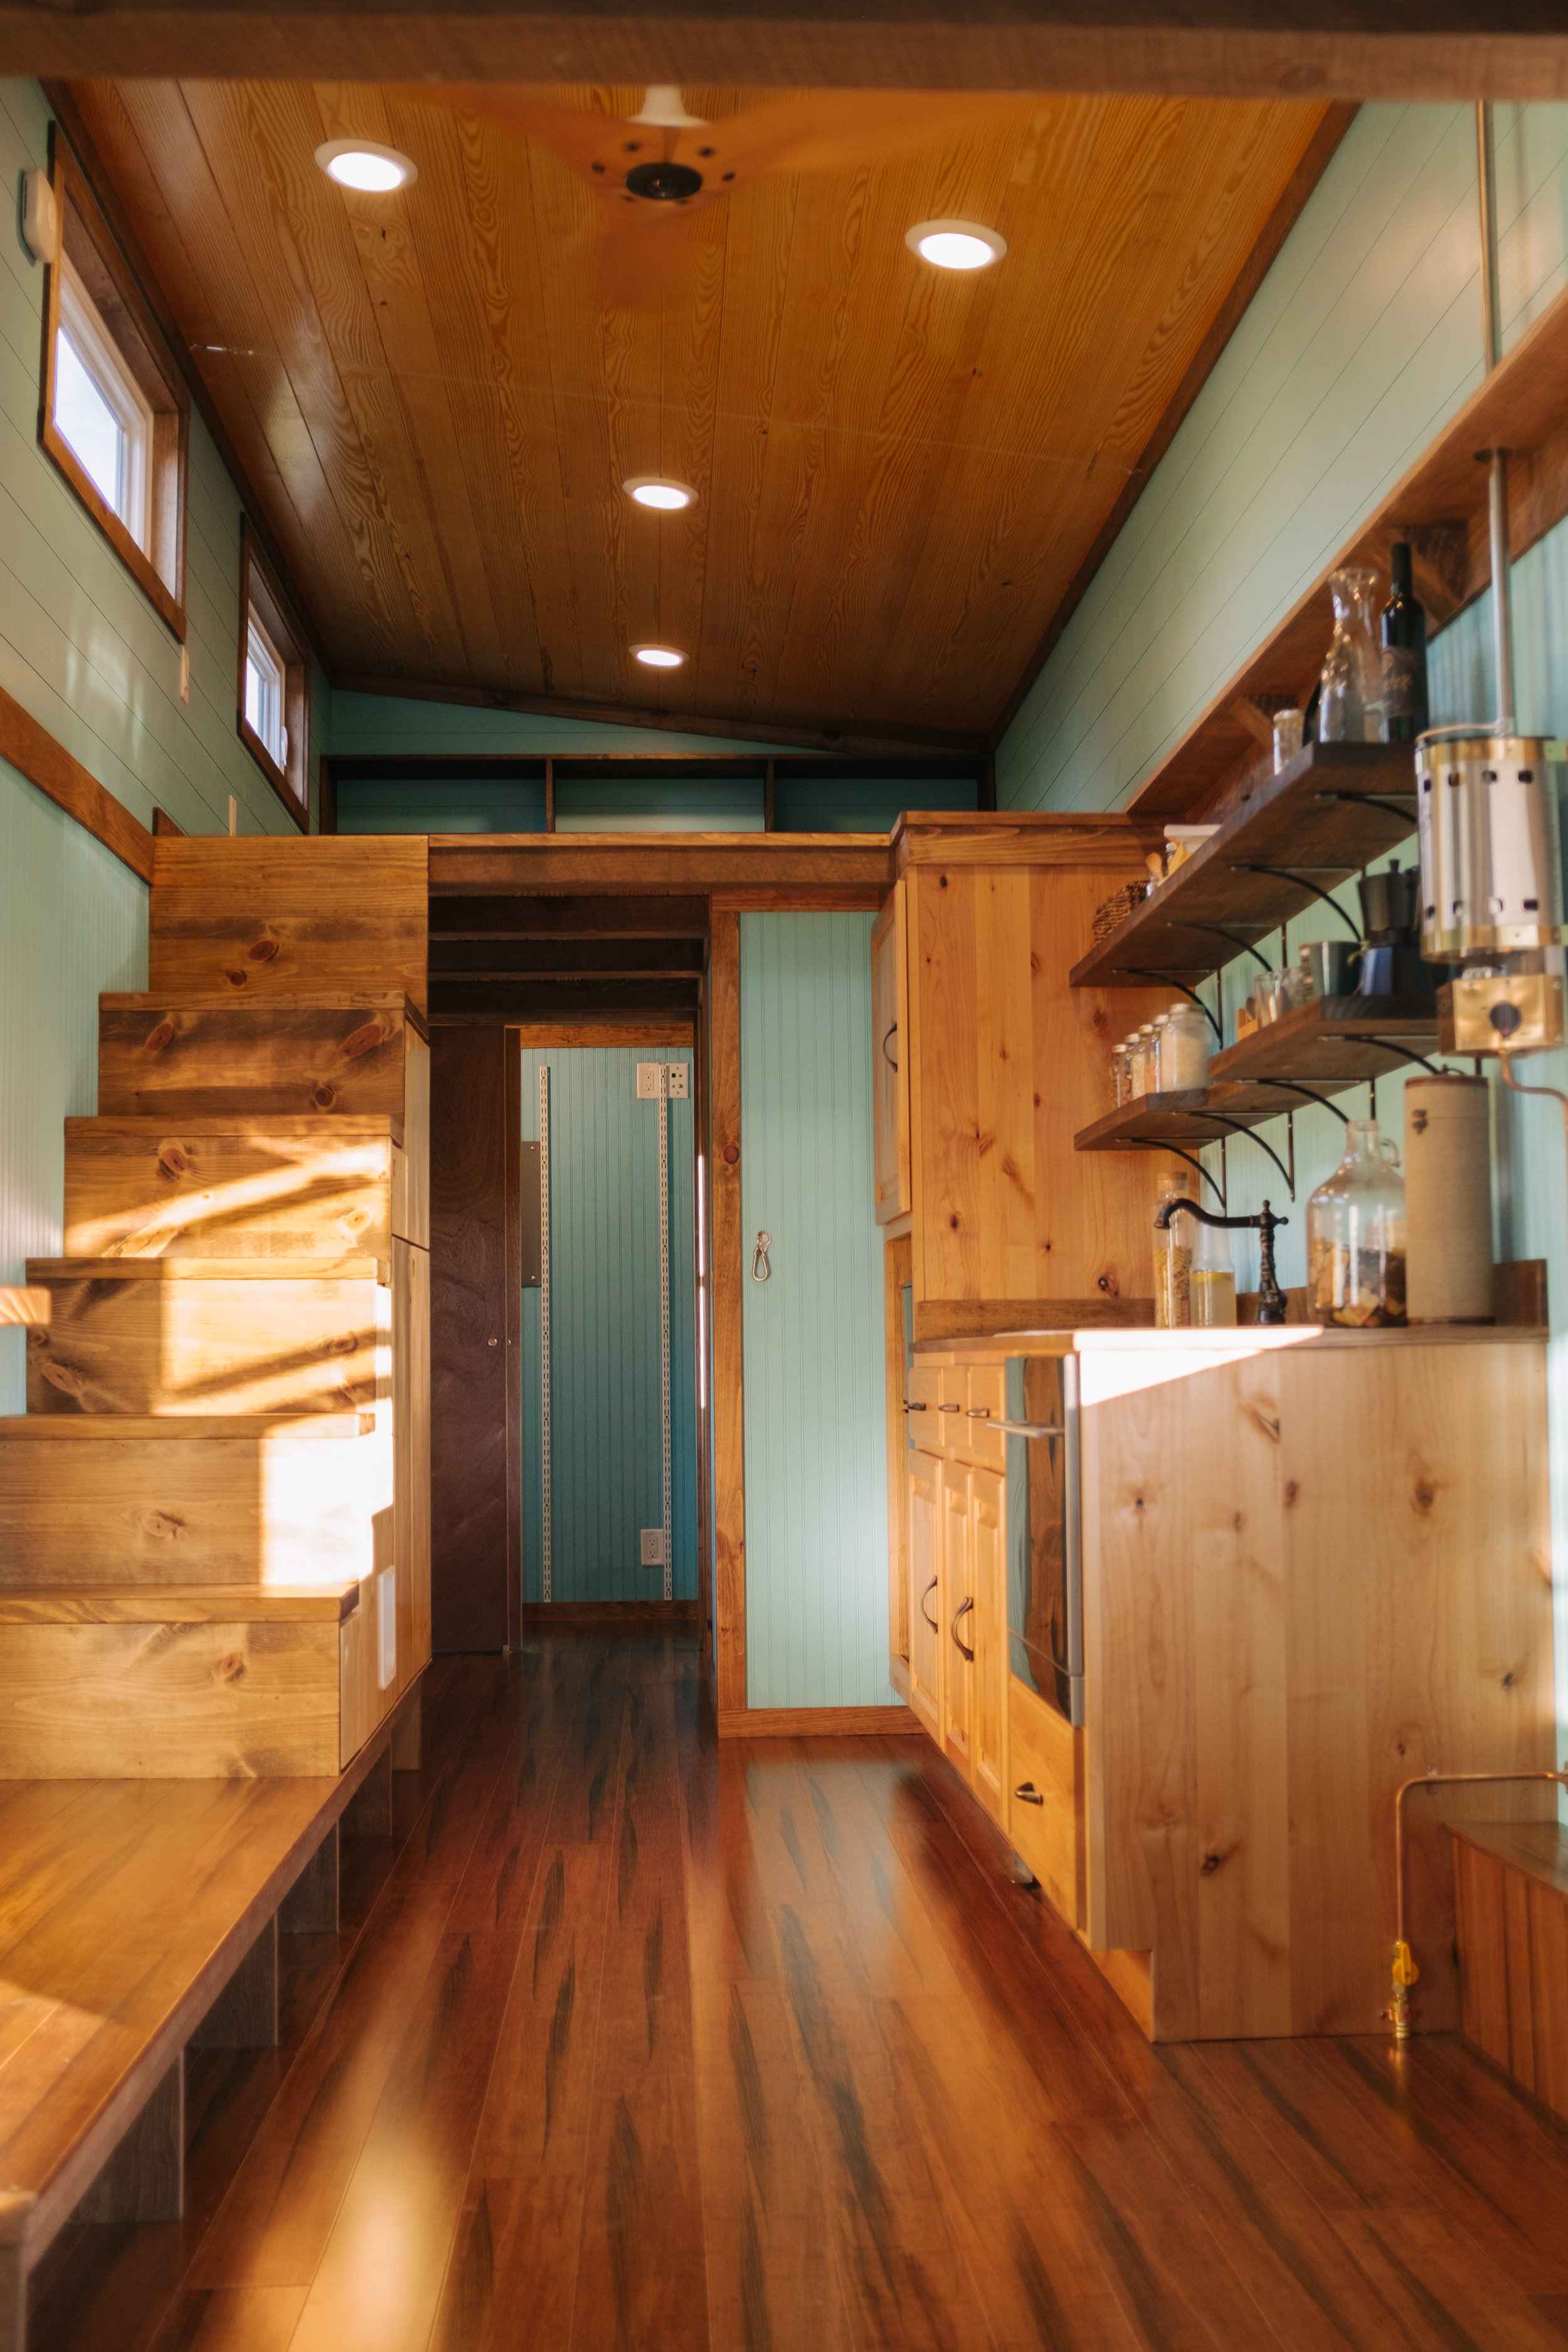 The Big Whimsy by Wind River Tiny Homes - built in storage stairs, Haiku ceiling fan, custom penny counter top, bamboo flooring, custom lily pad spiral stairs, cozy cabin propane heater